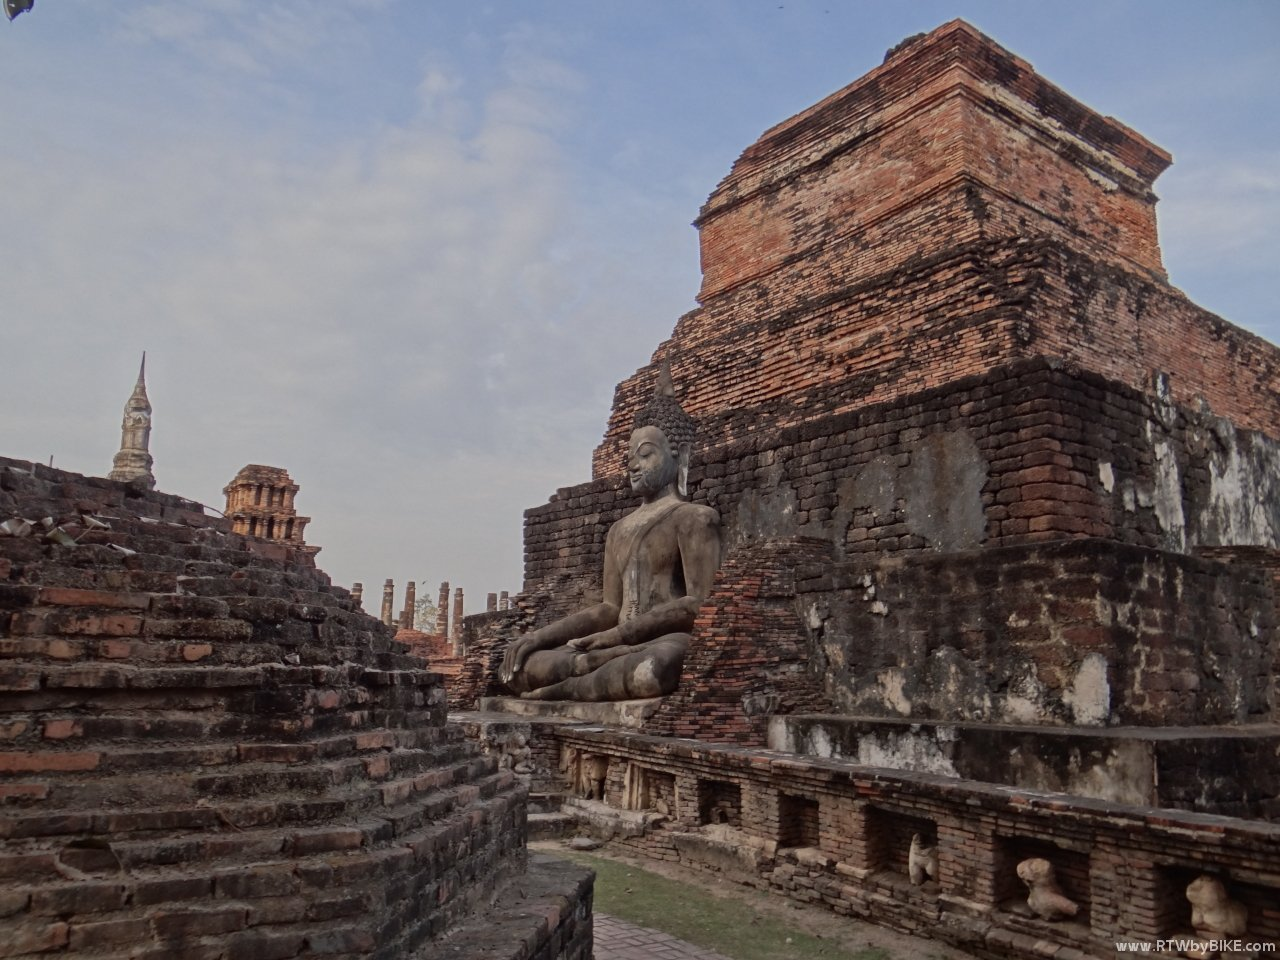 ... was the capital of the first Kingdom of Siam in the 13th and 14th centuries.